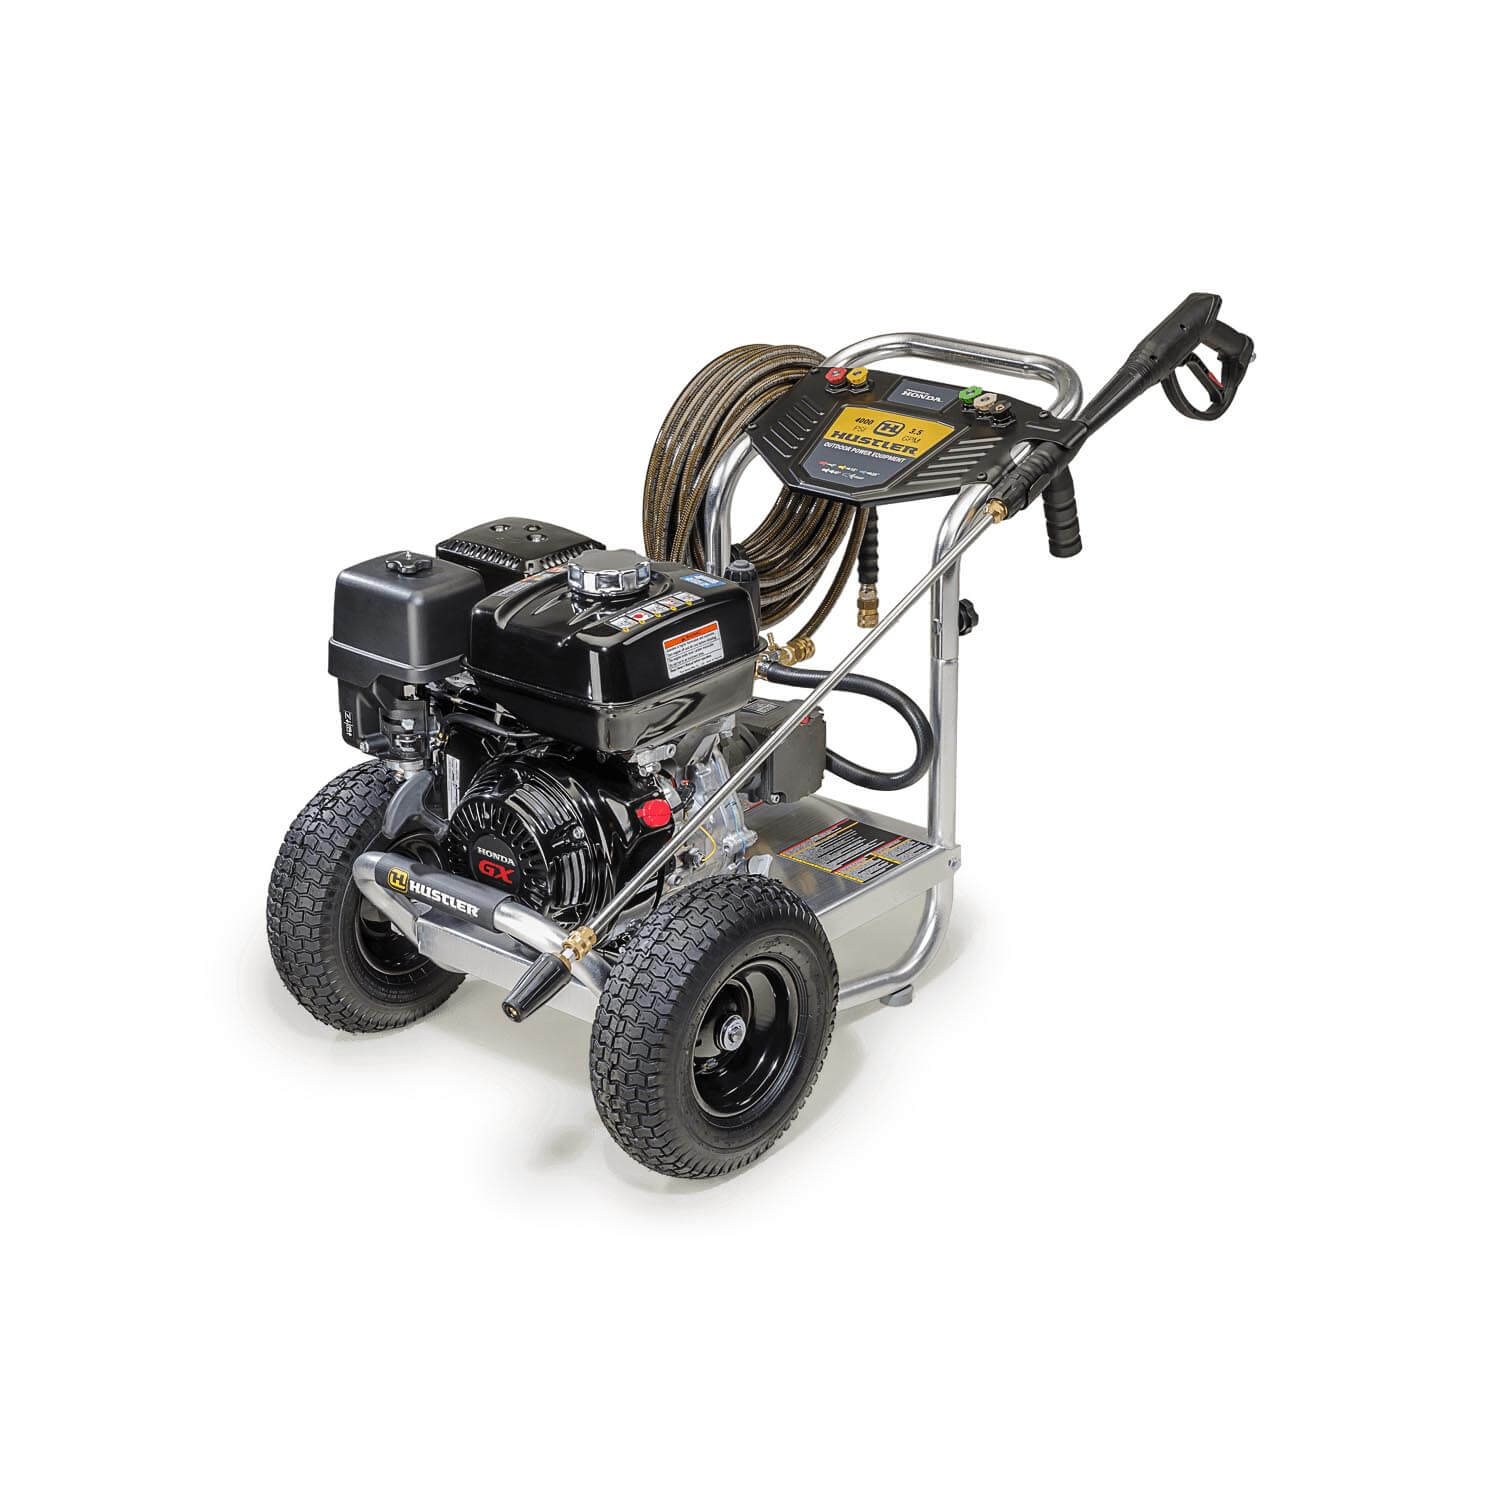 Image of front three quarters of a pressure washer